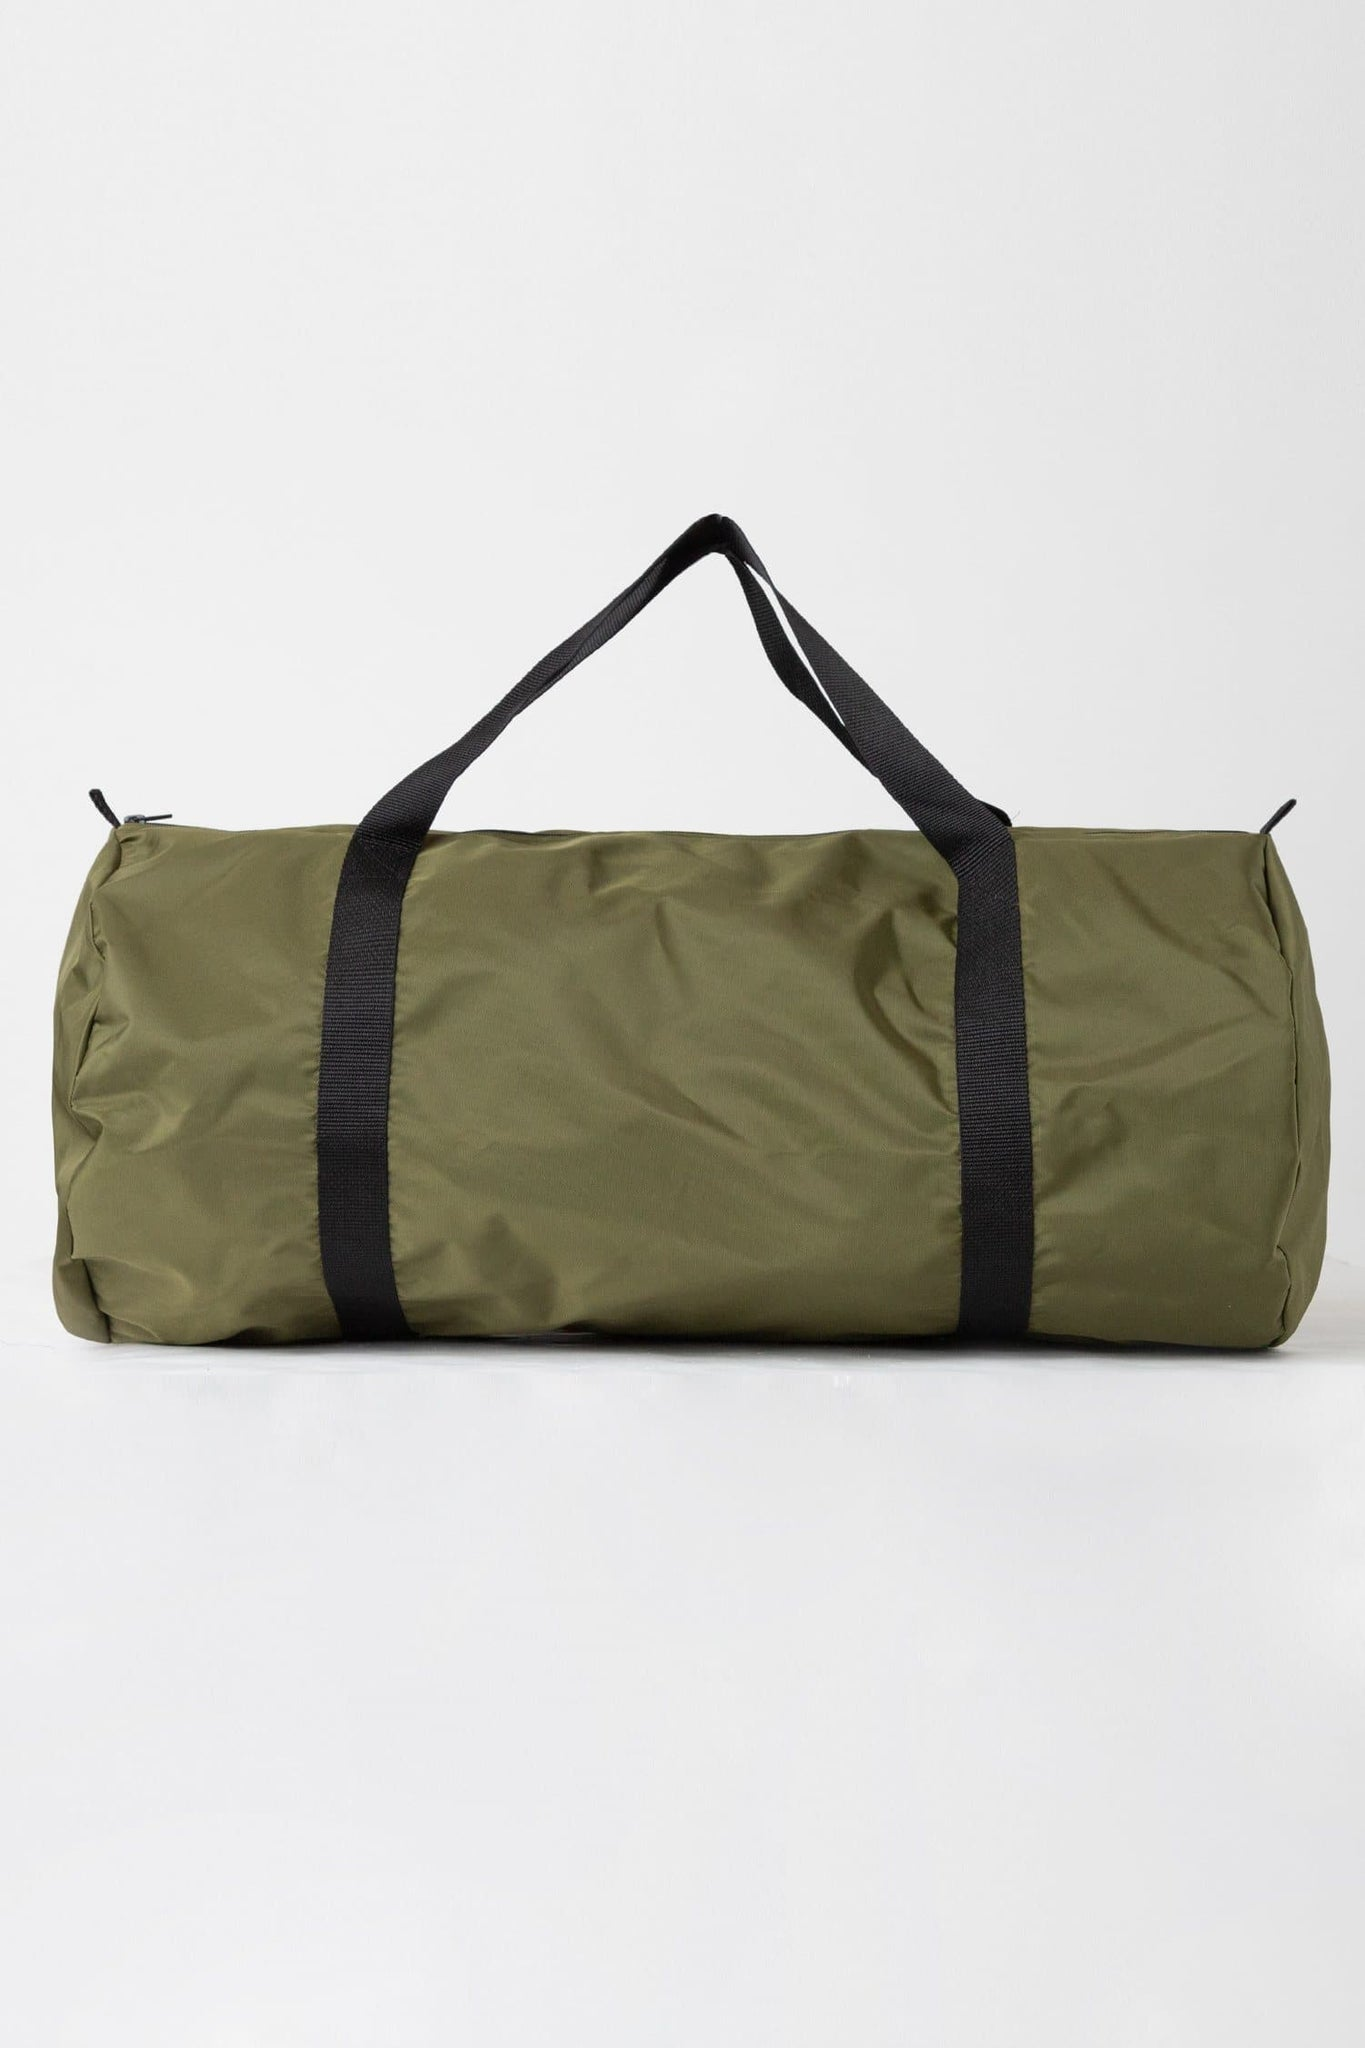 RNB563 - Nylon Pack Cloth Weekender Bag